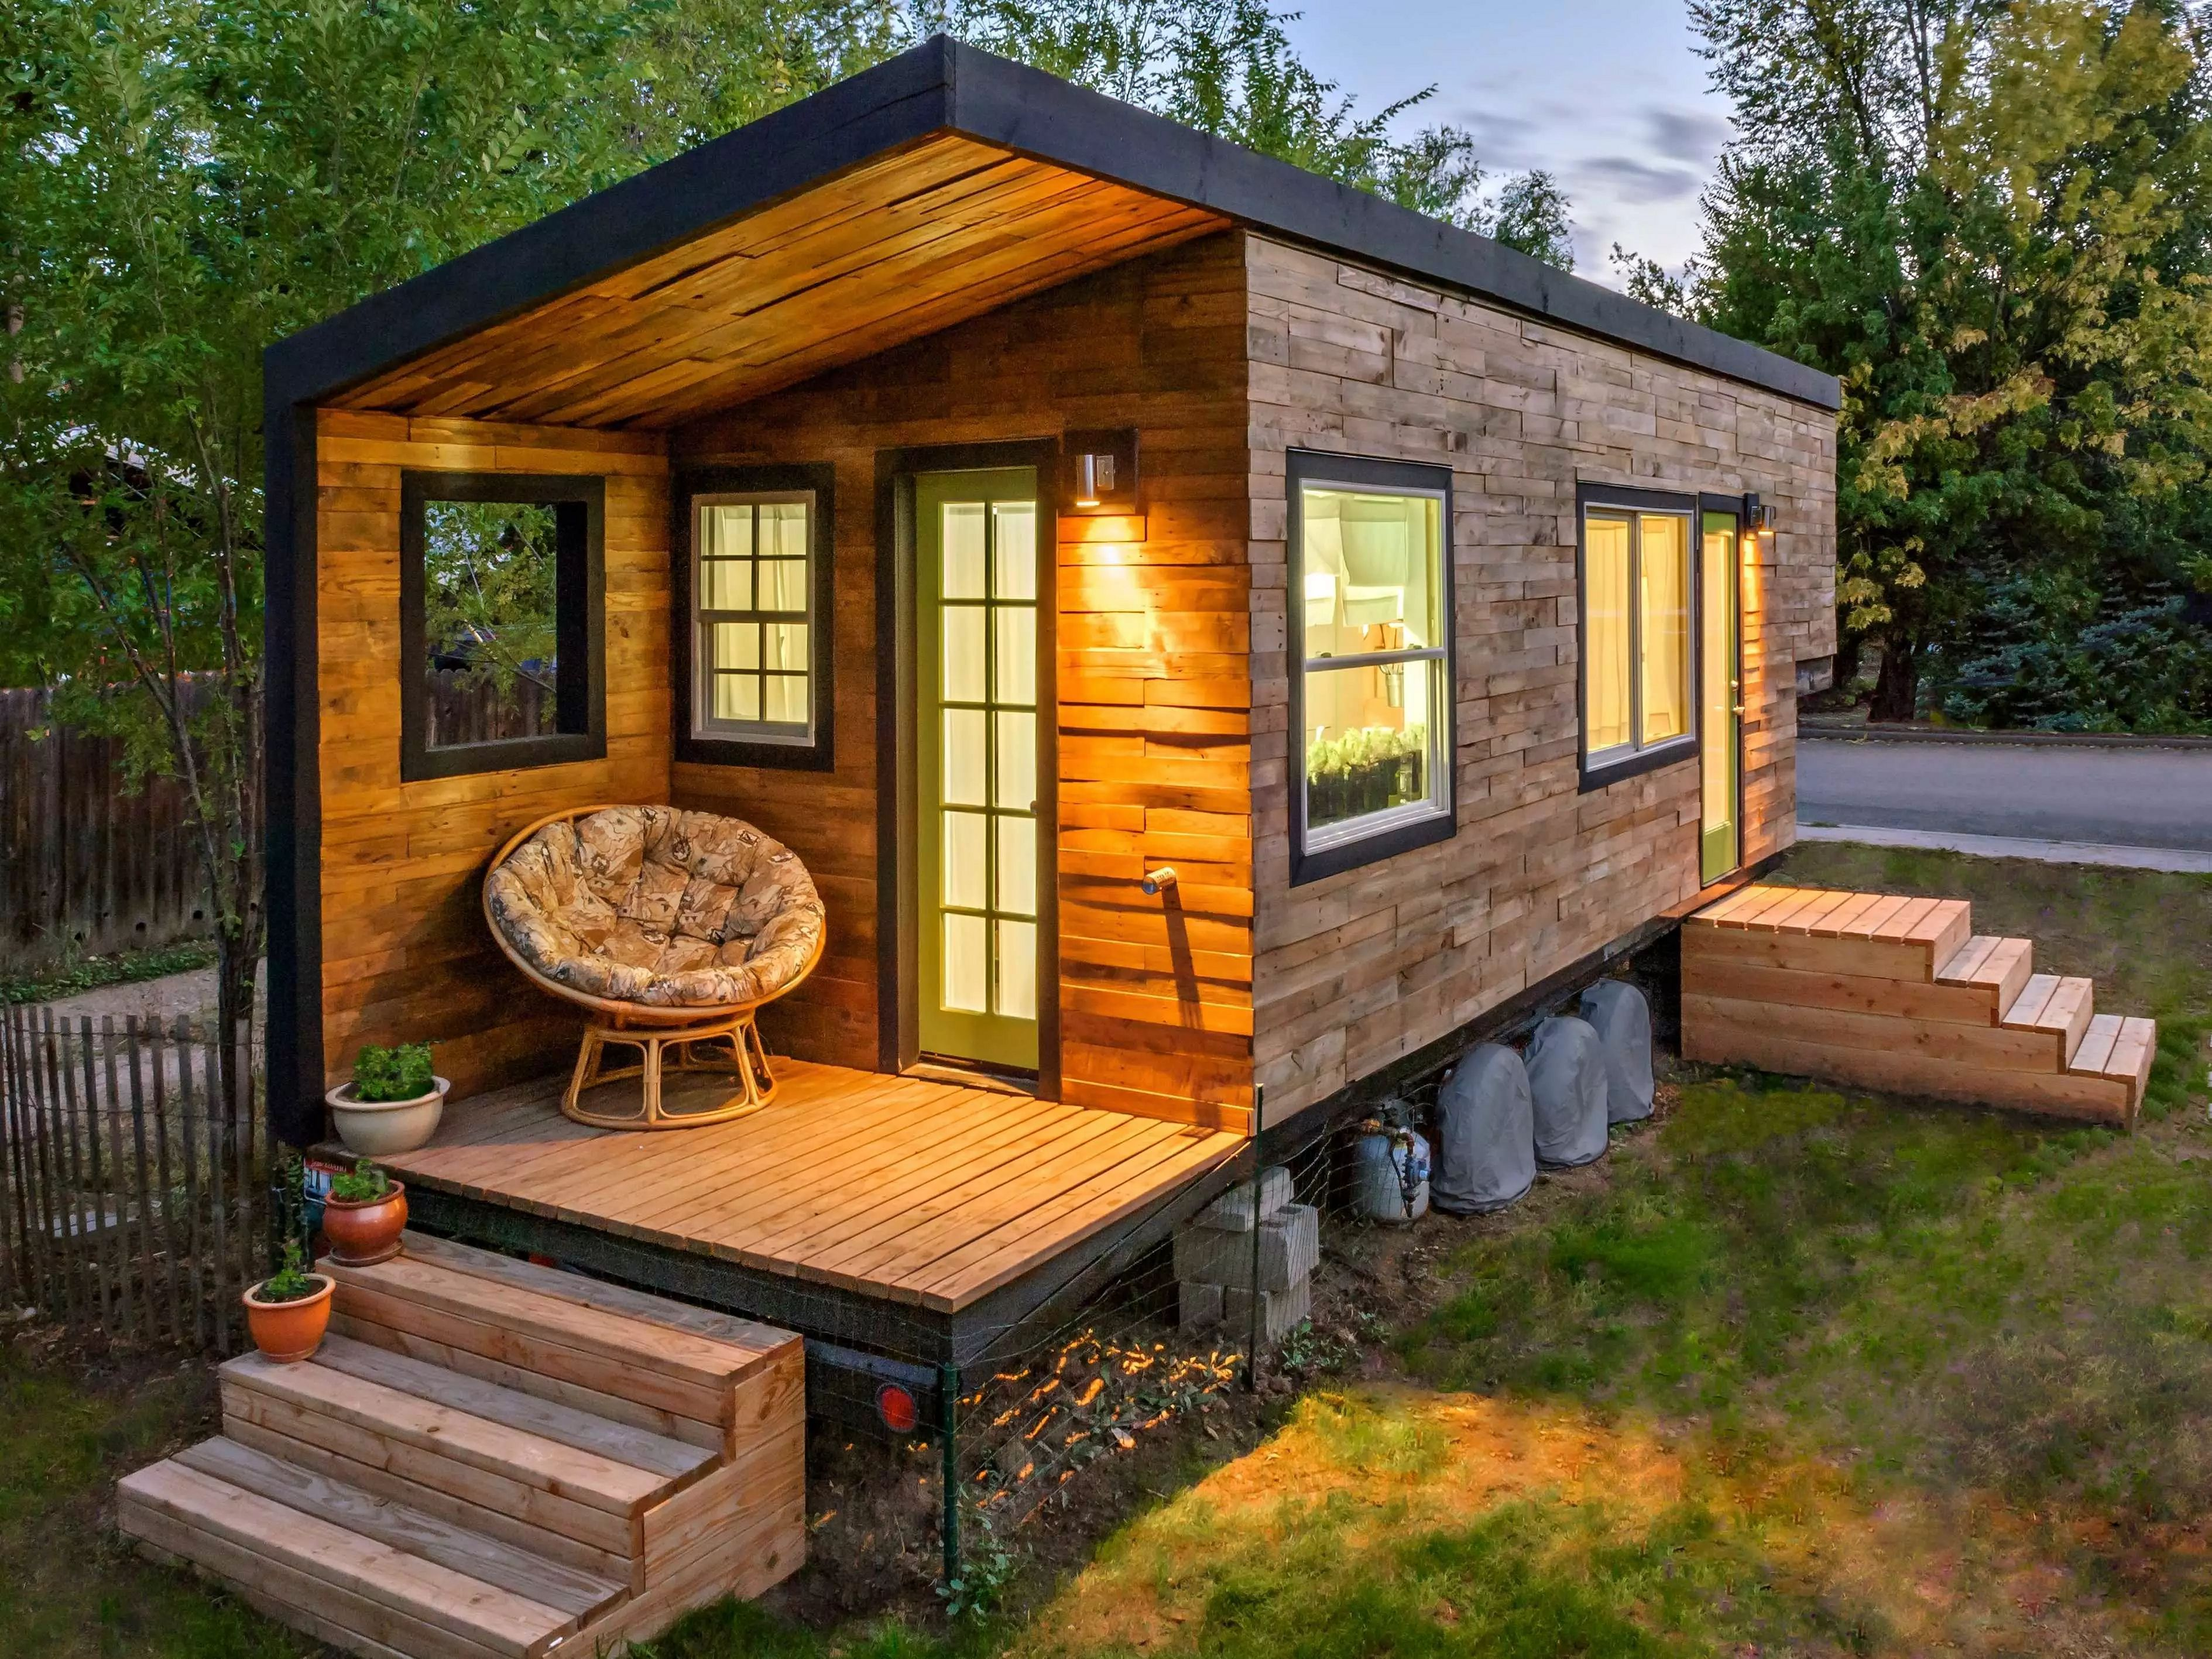 17 Rustic Tiny Home Exterior Ideas For Best Inspiration Tiny